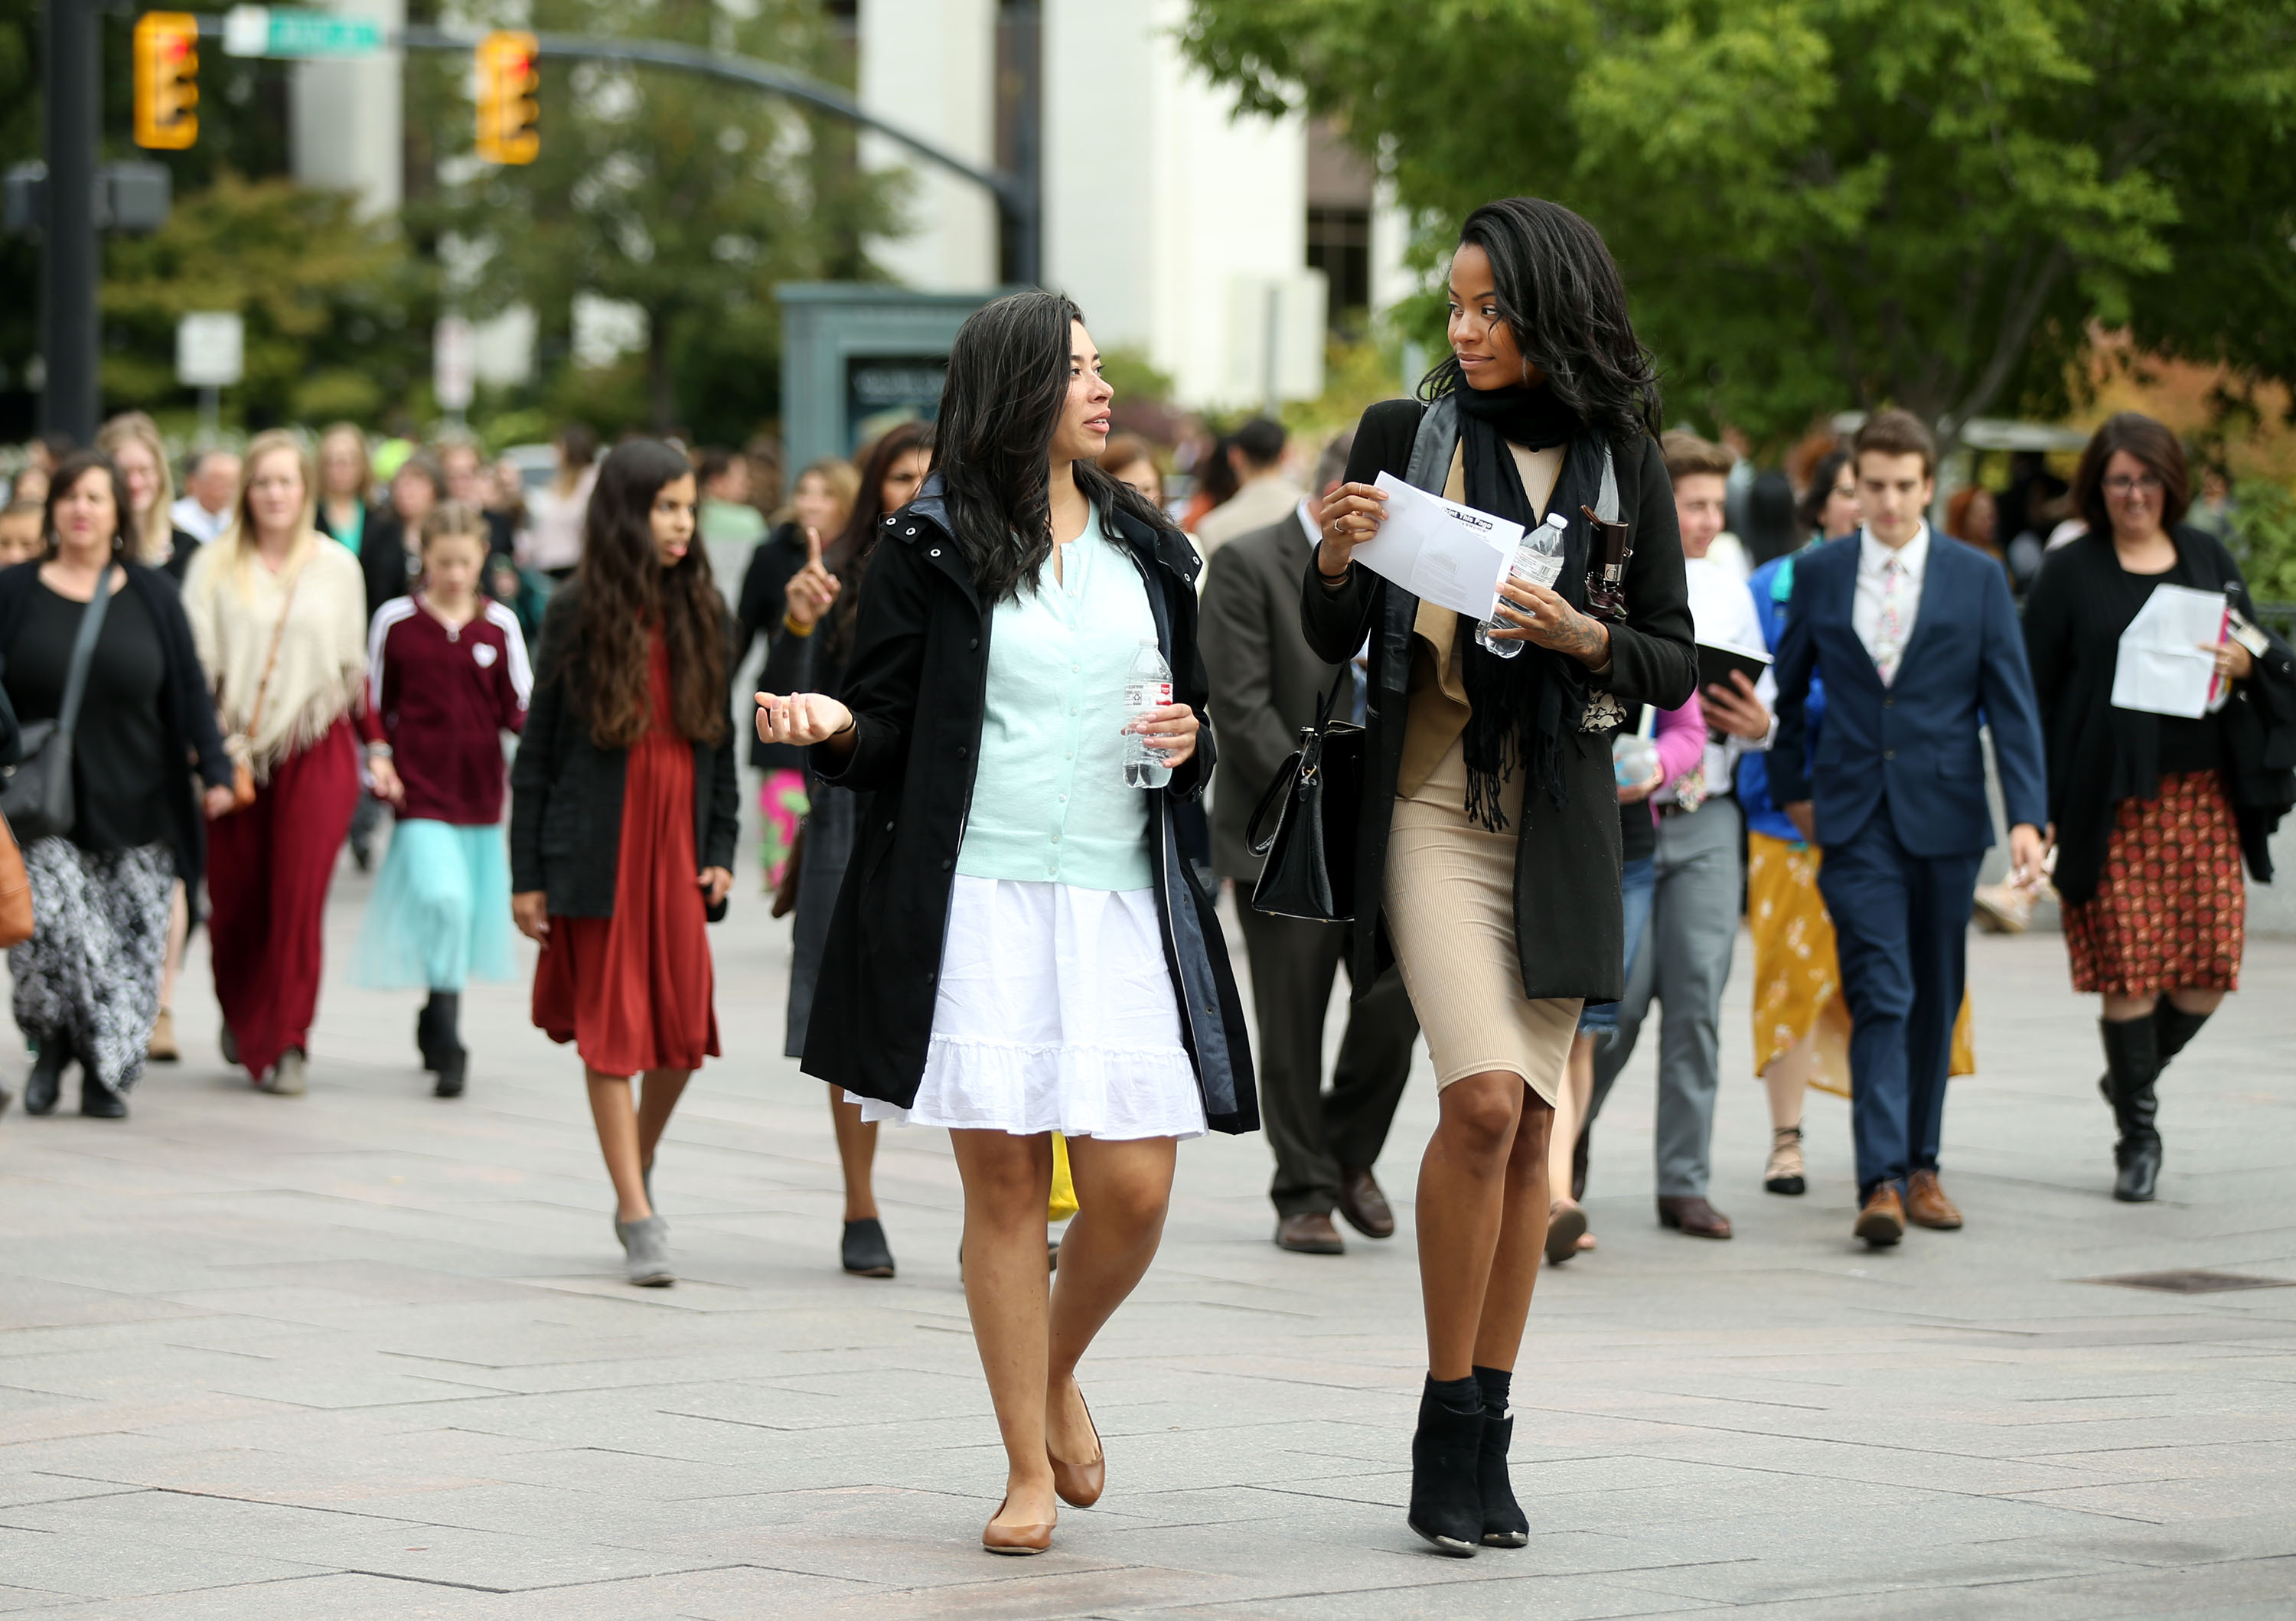 Women head to the general women's session of the 188th Semiannual General Conference of The Church of Jesus Christ of Latter-day Saints held in the Conference Center in downtown Salt Lake City on Saturday, Oct. 6, 2018.